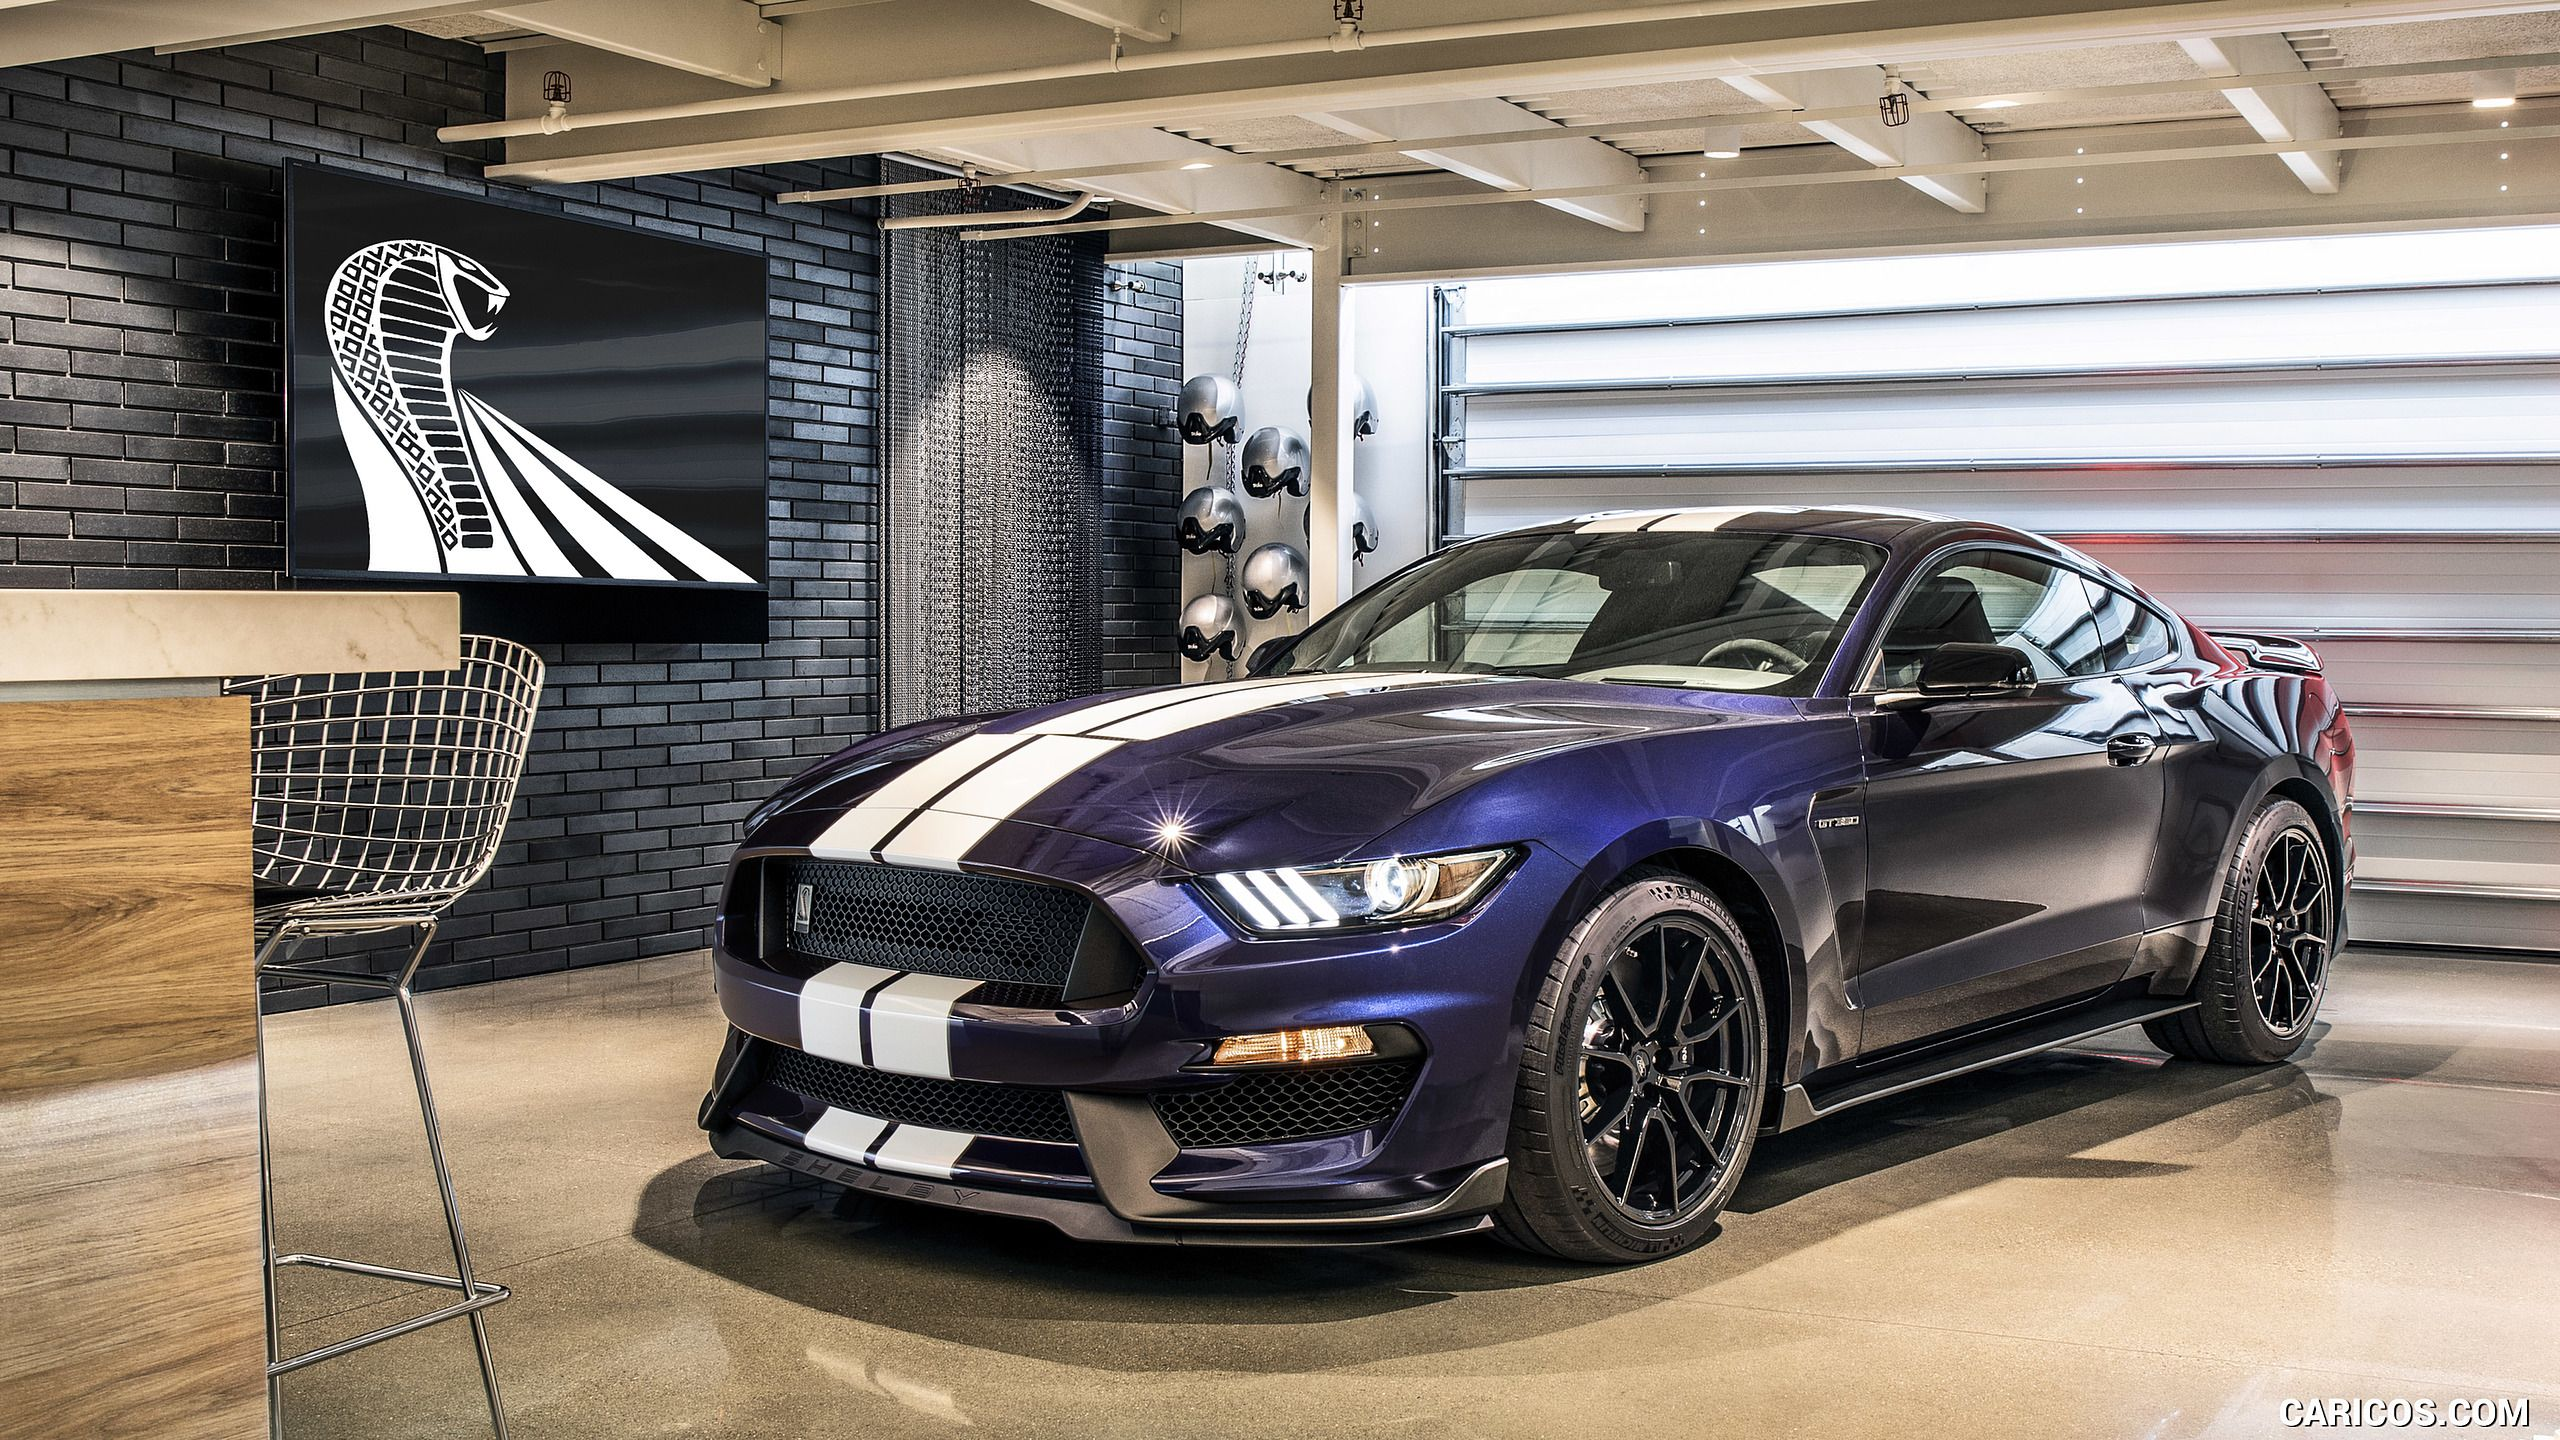 Next Stop Pinterest Ford Mustang Shelby Mustang Shelby Ford Mustang